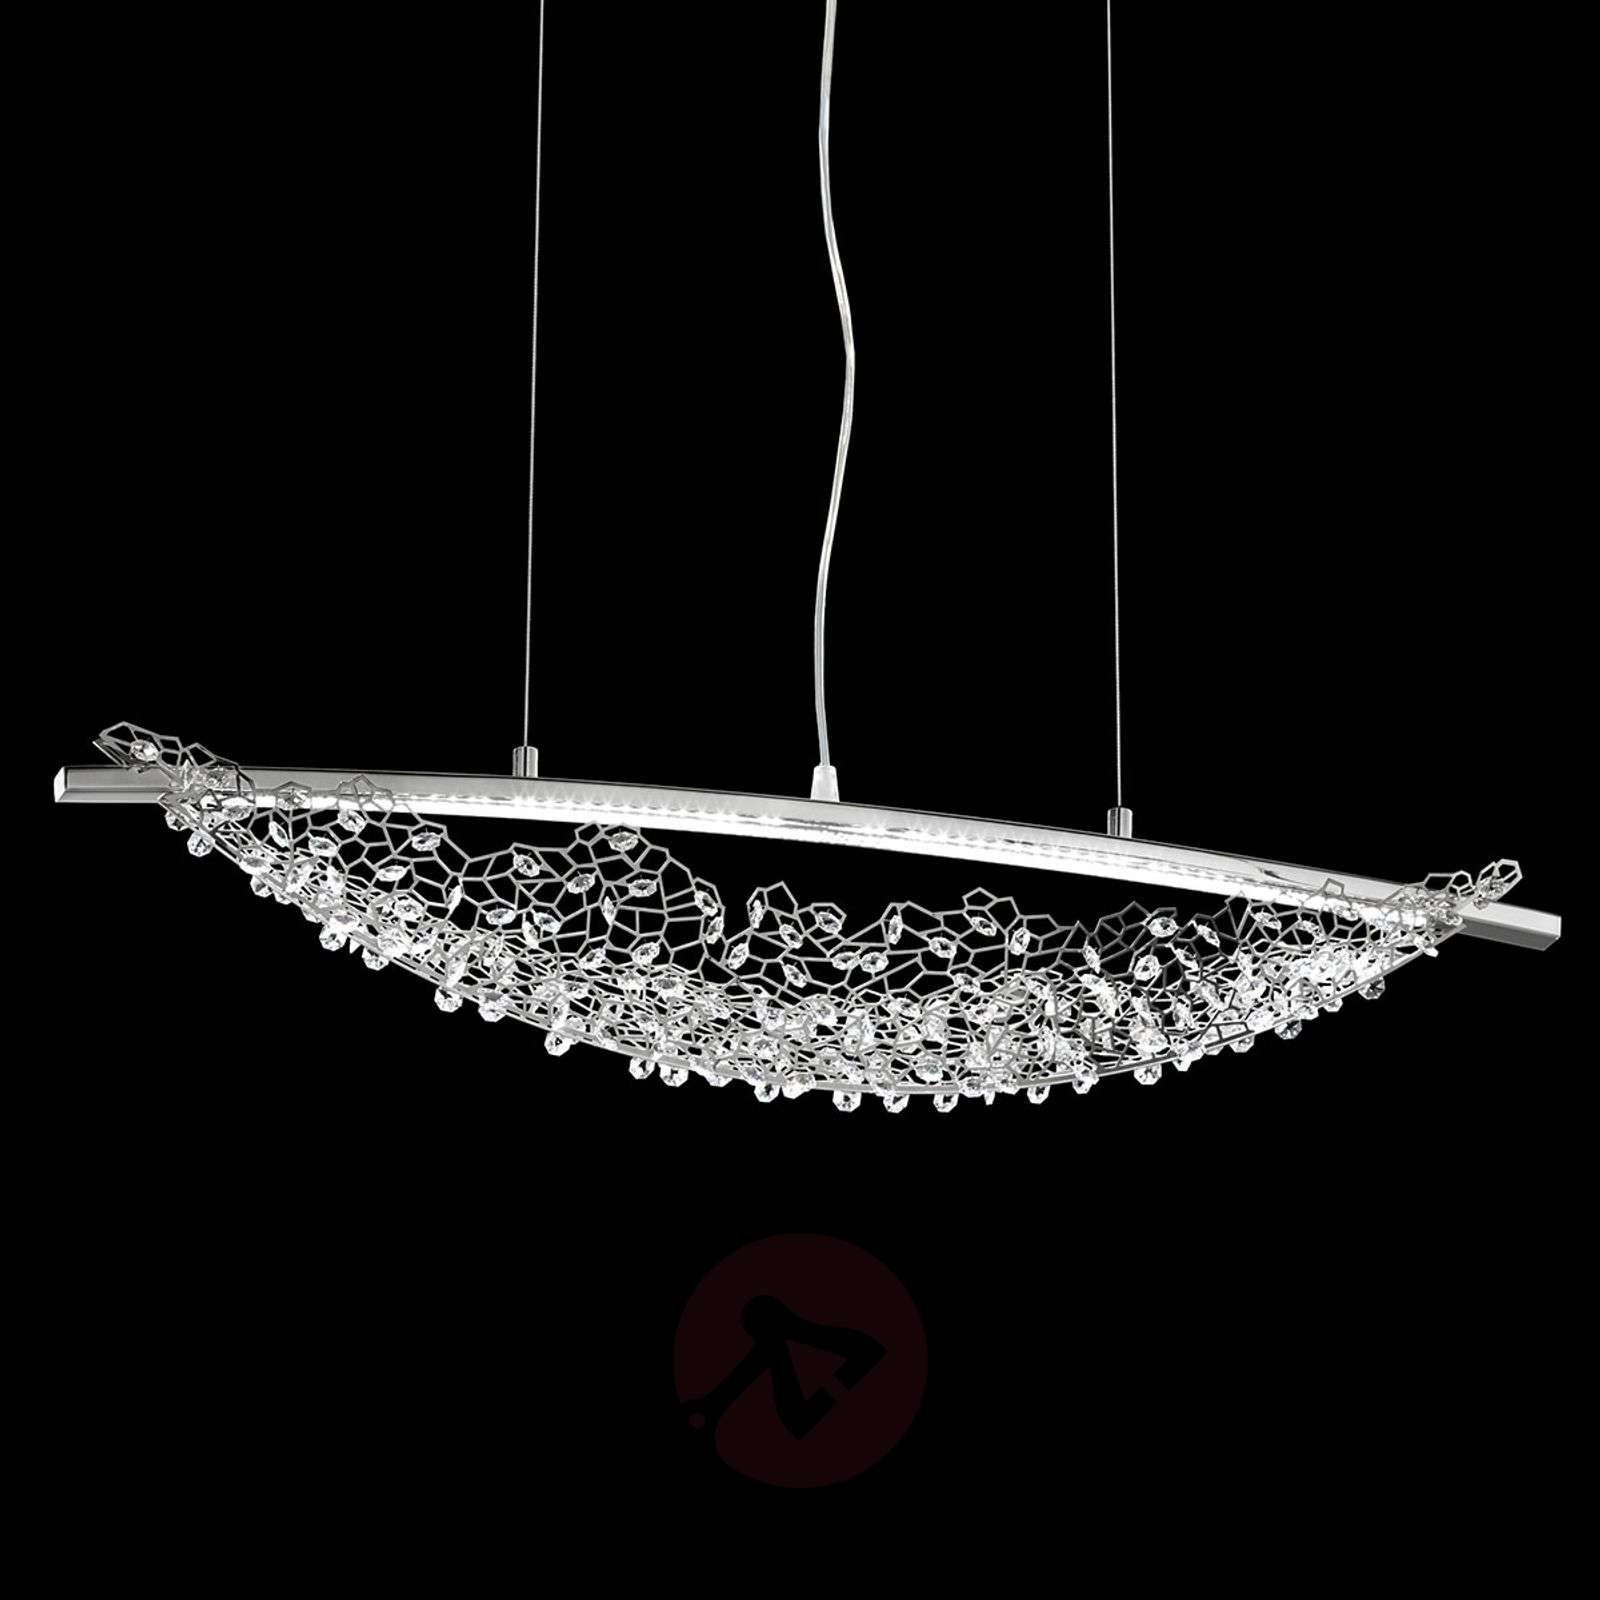 Suspension LED Amaca avec Swarovski, 76 cm-8578004-01